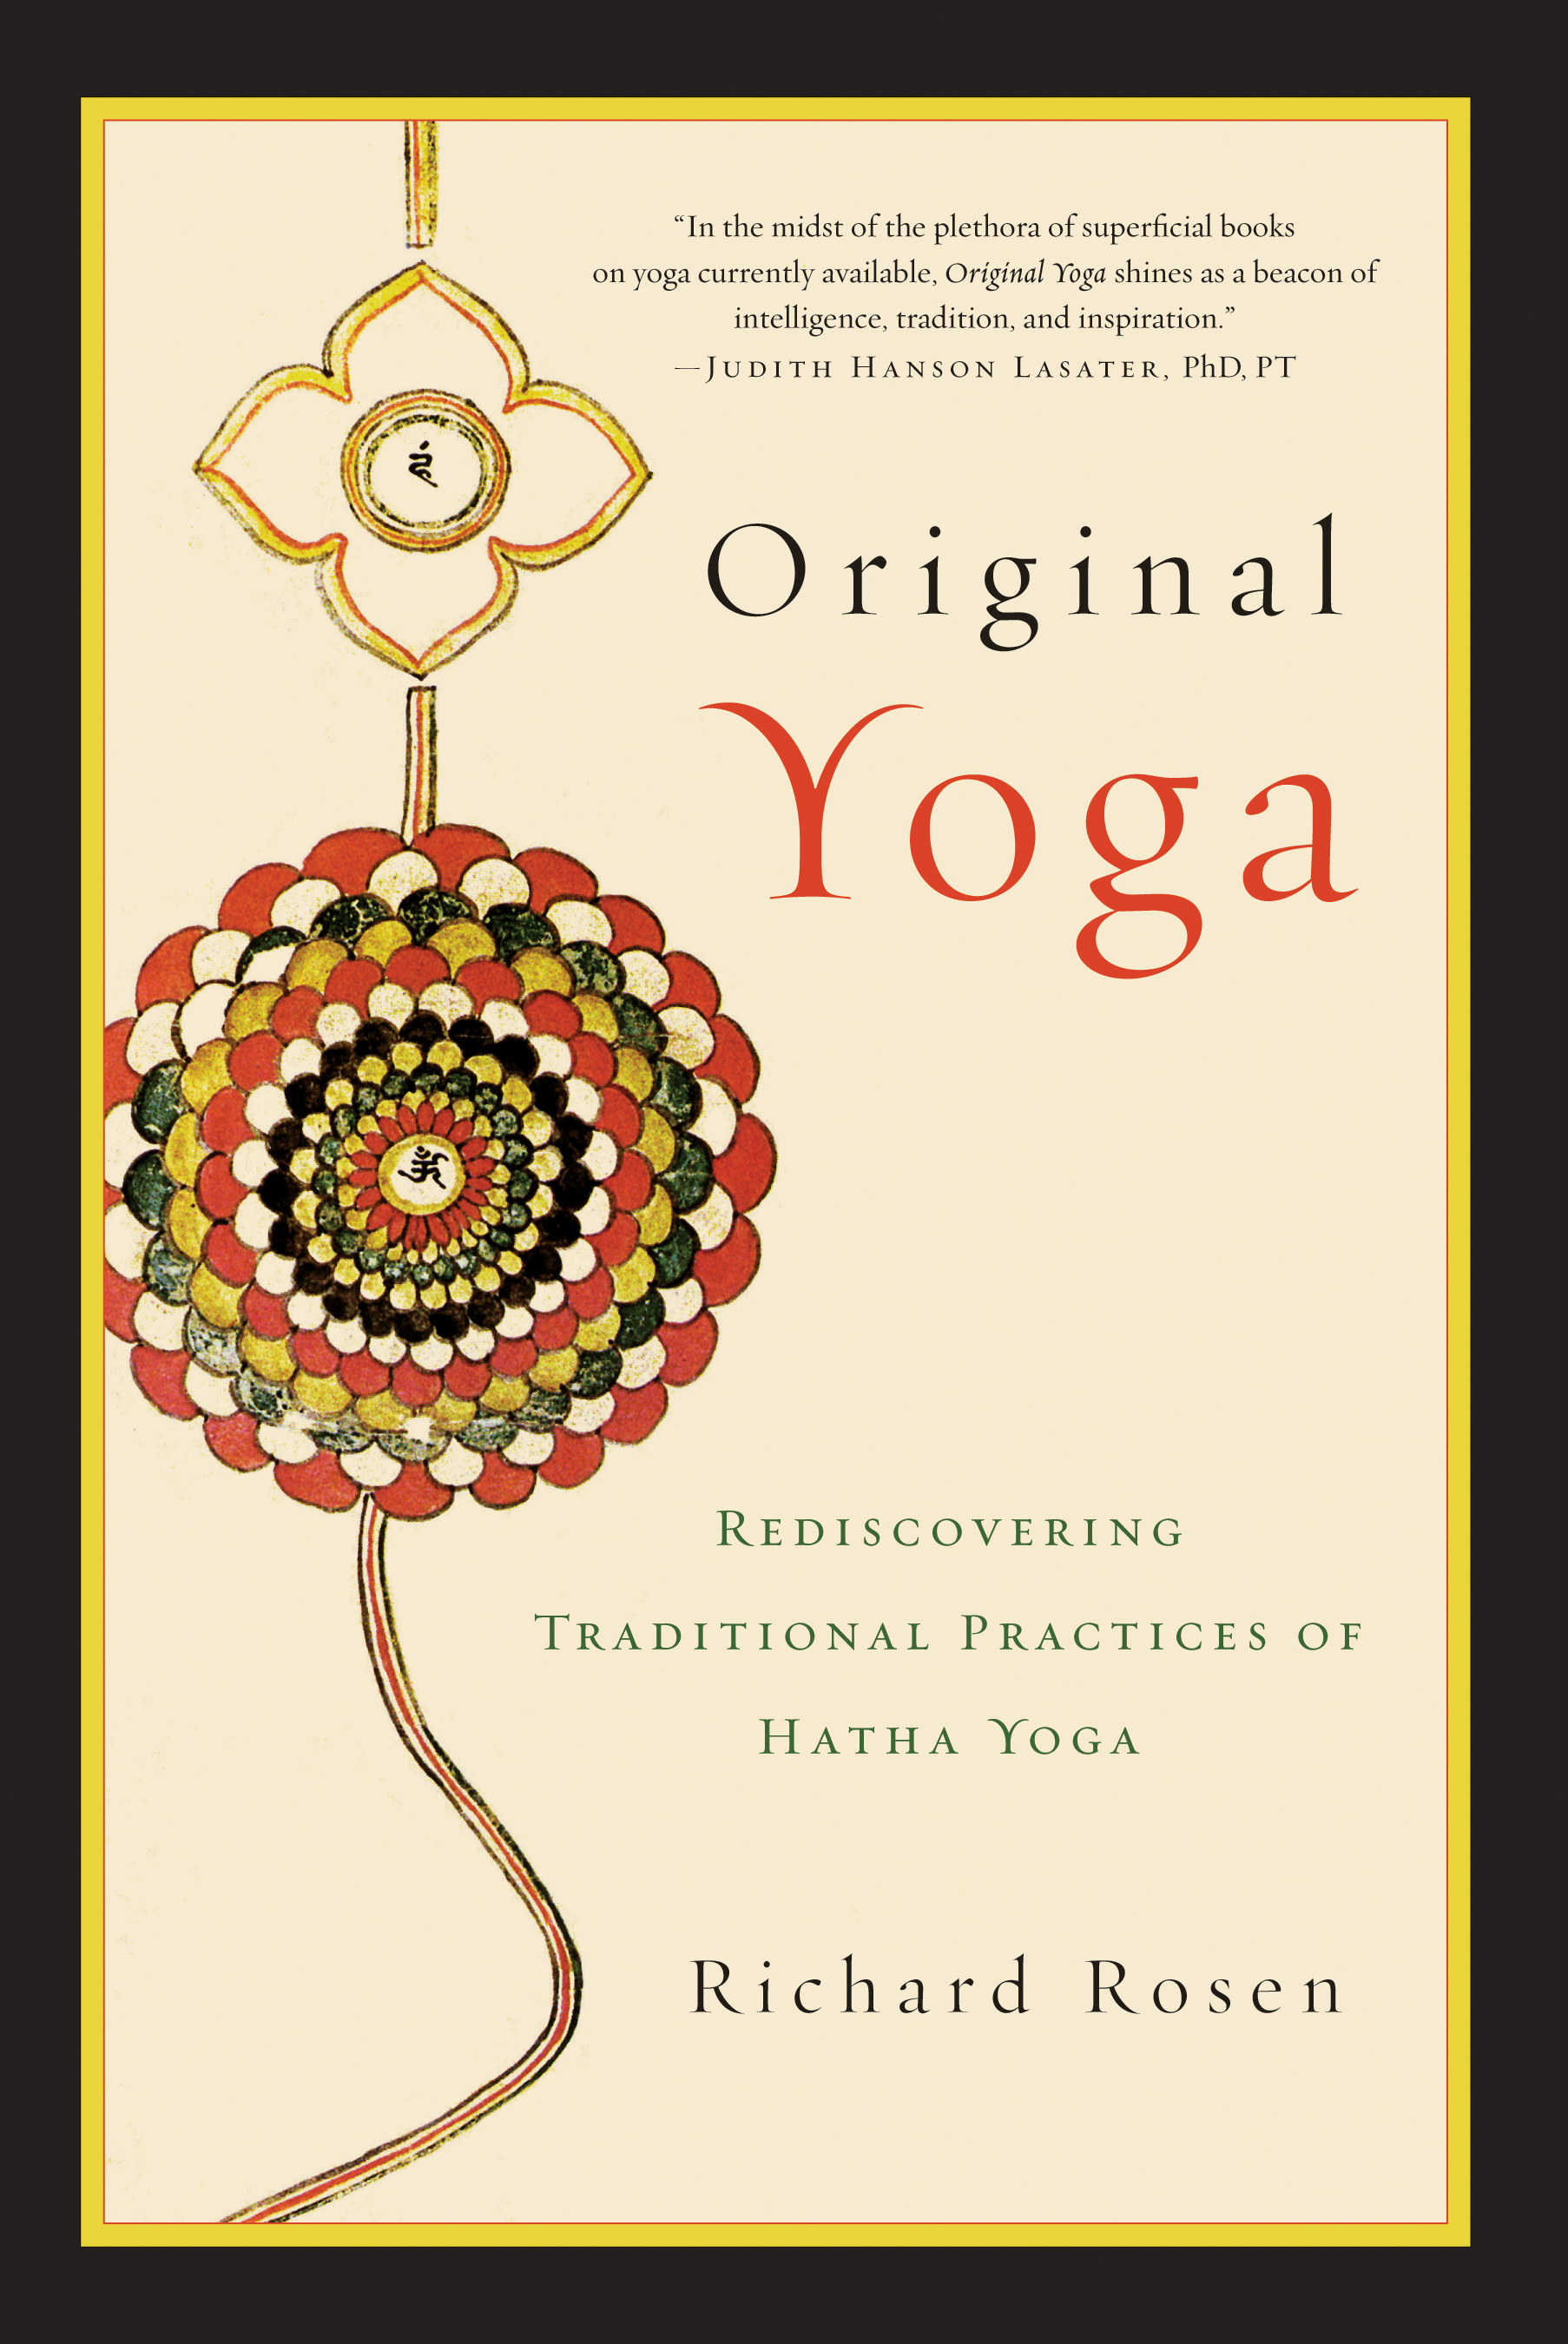 Original Yoga: Rediscovering Traditional Practices of Hatha Yoga By: Richard Rosen